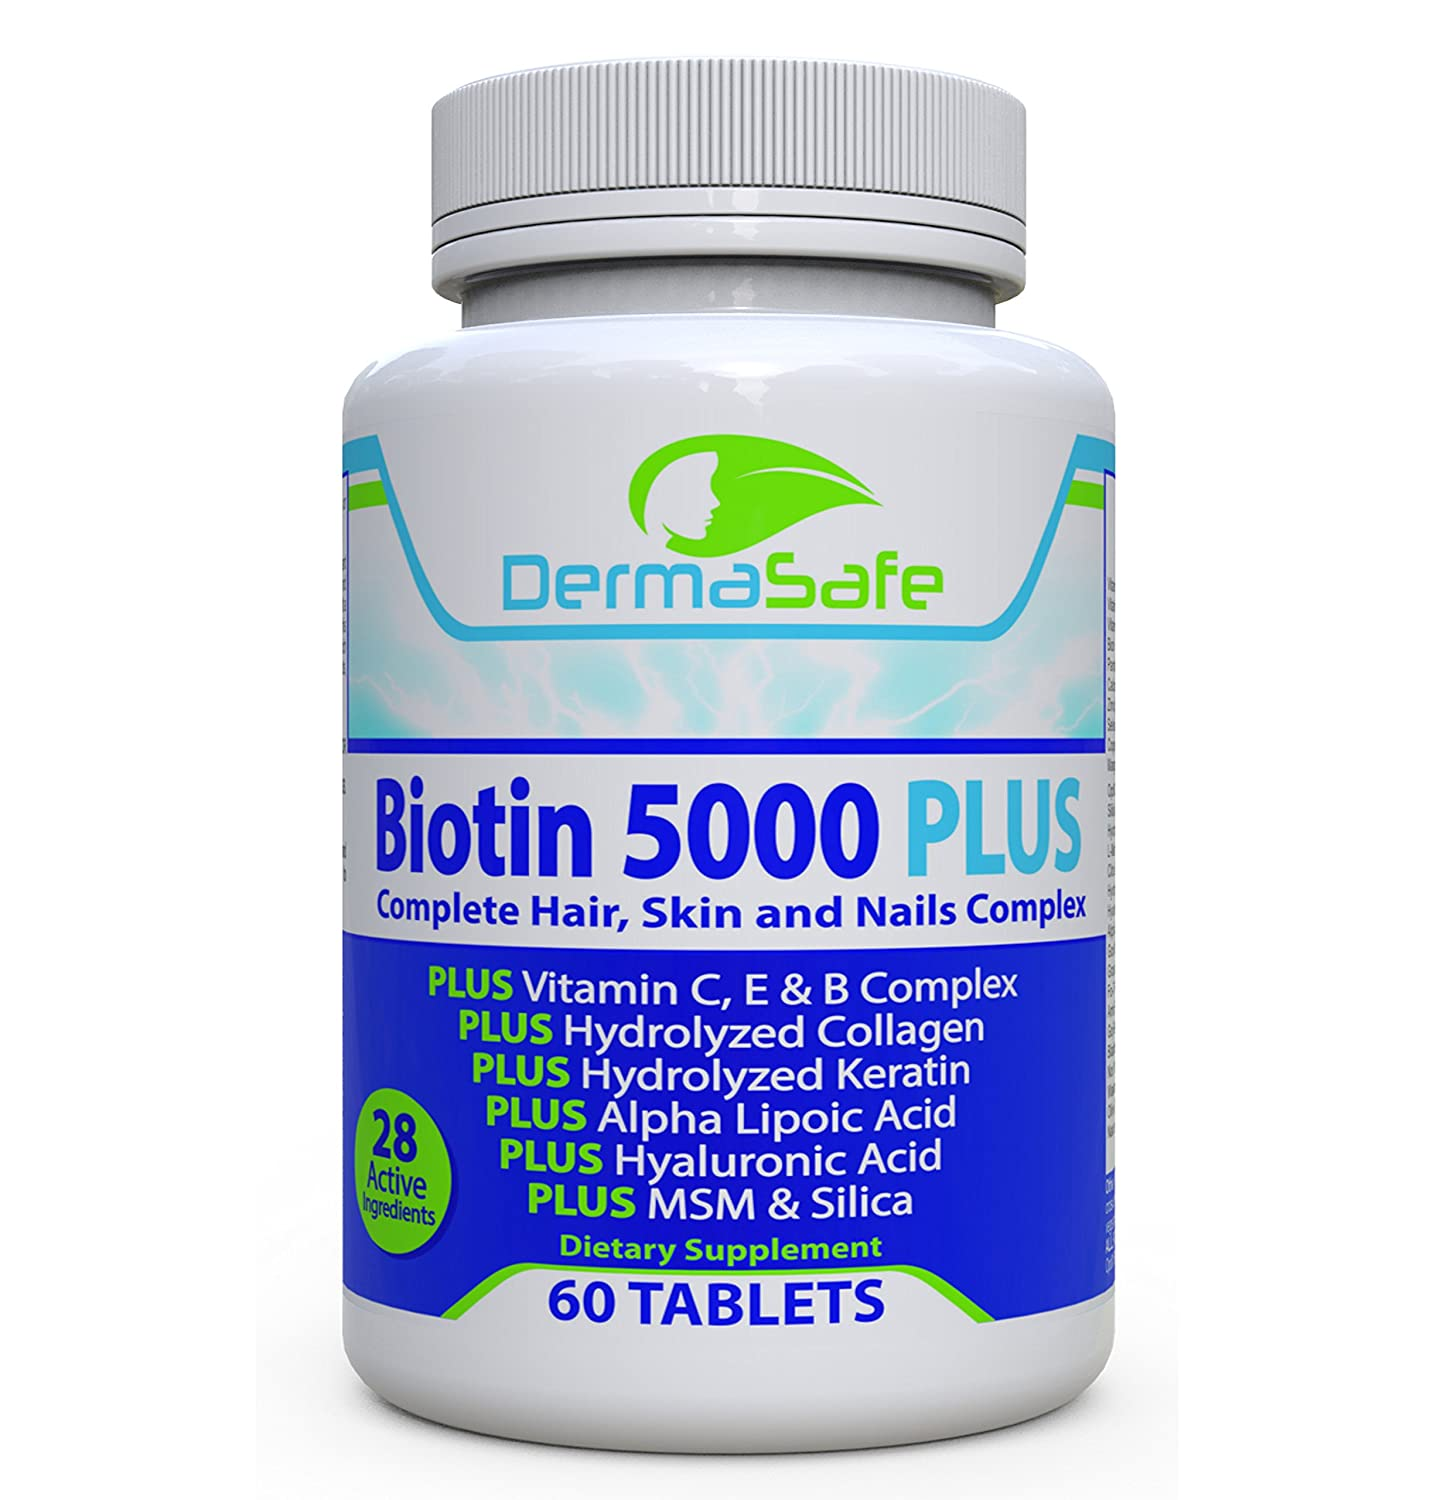 Amazon.com: Biotin 5000 PLUS - 7X More Effective For Hair, Skin and ...